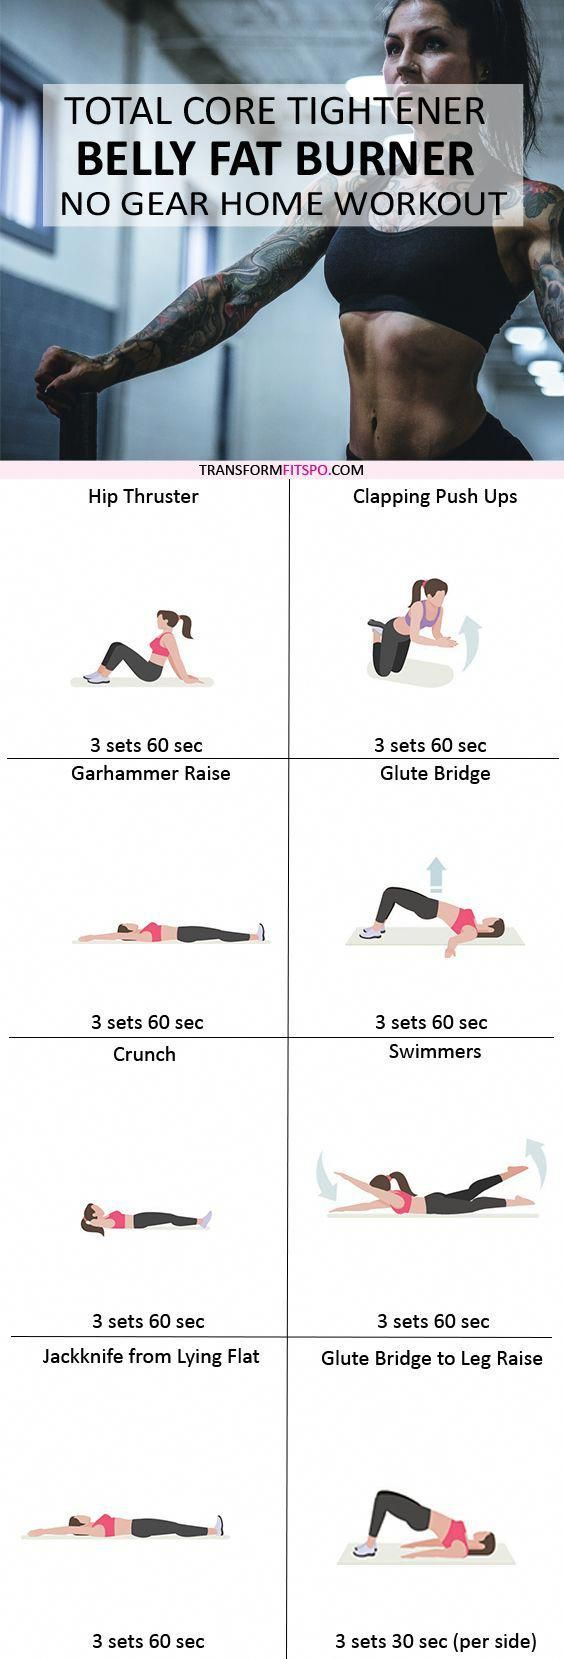 workout to tighten your whole core and burn your belly fat.